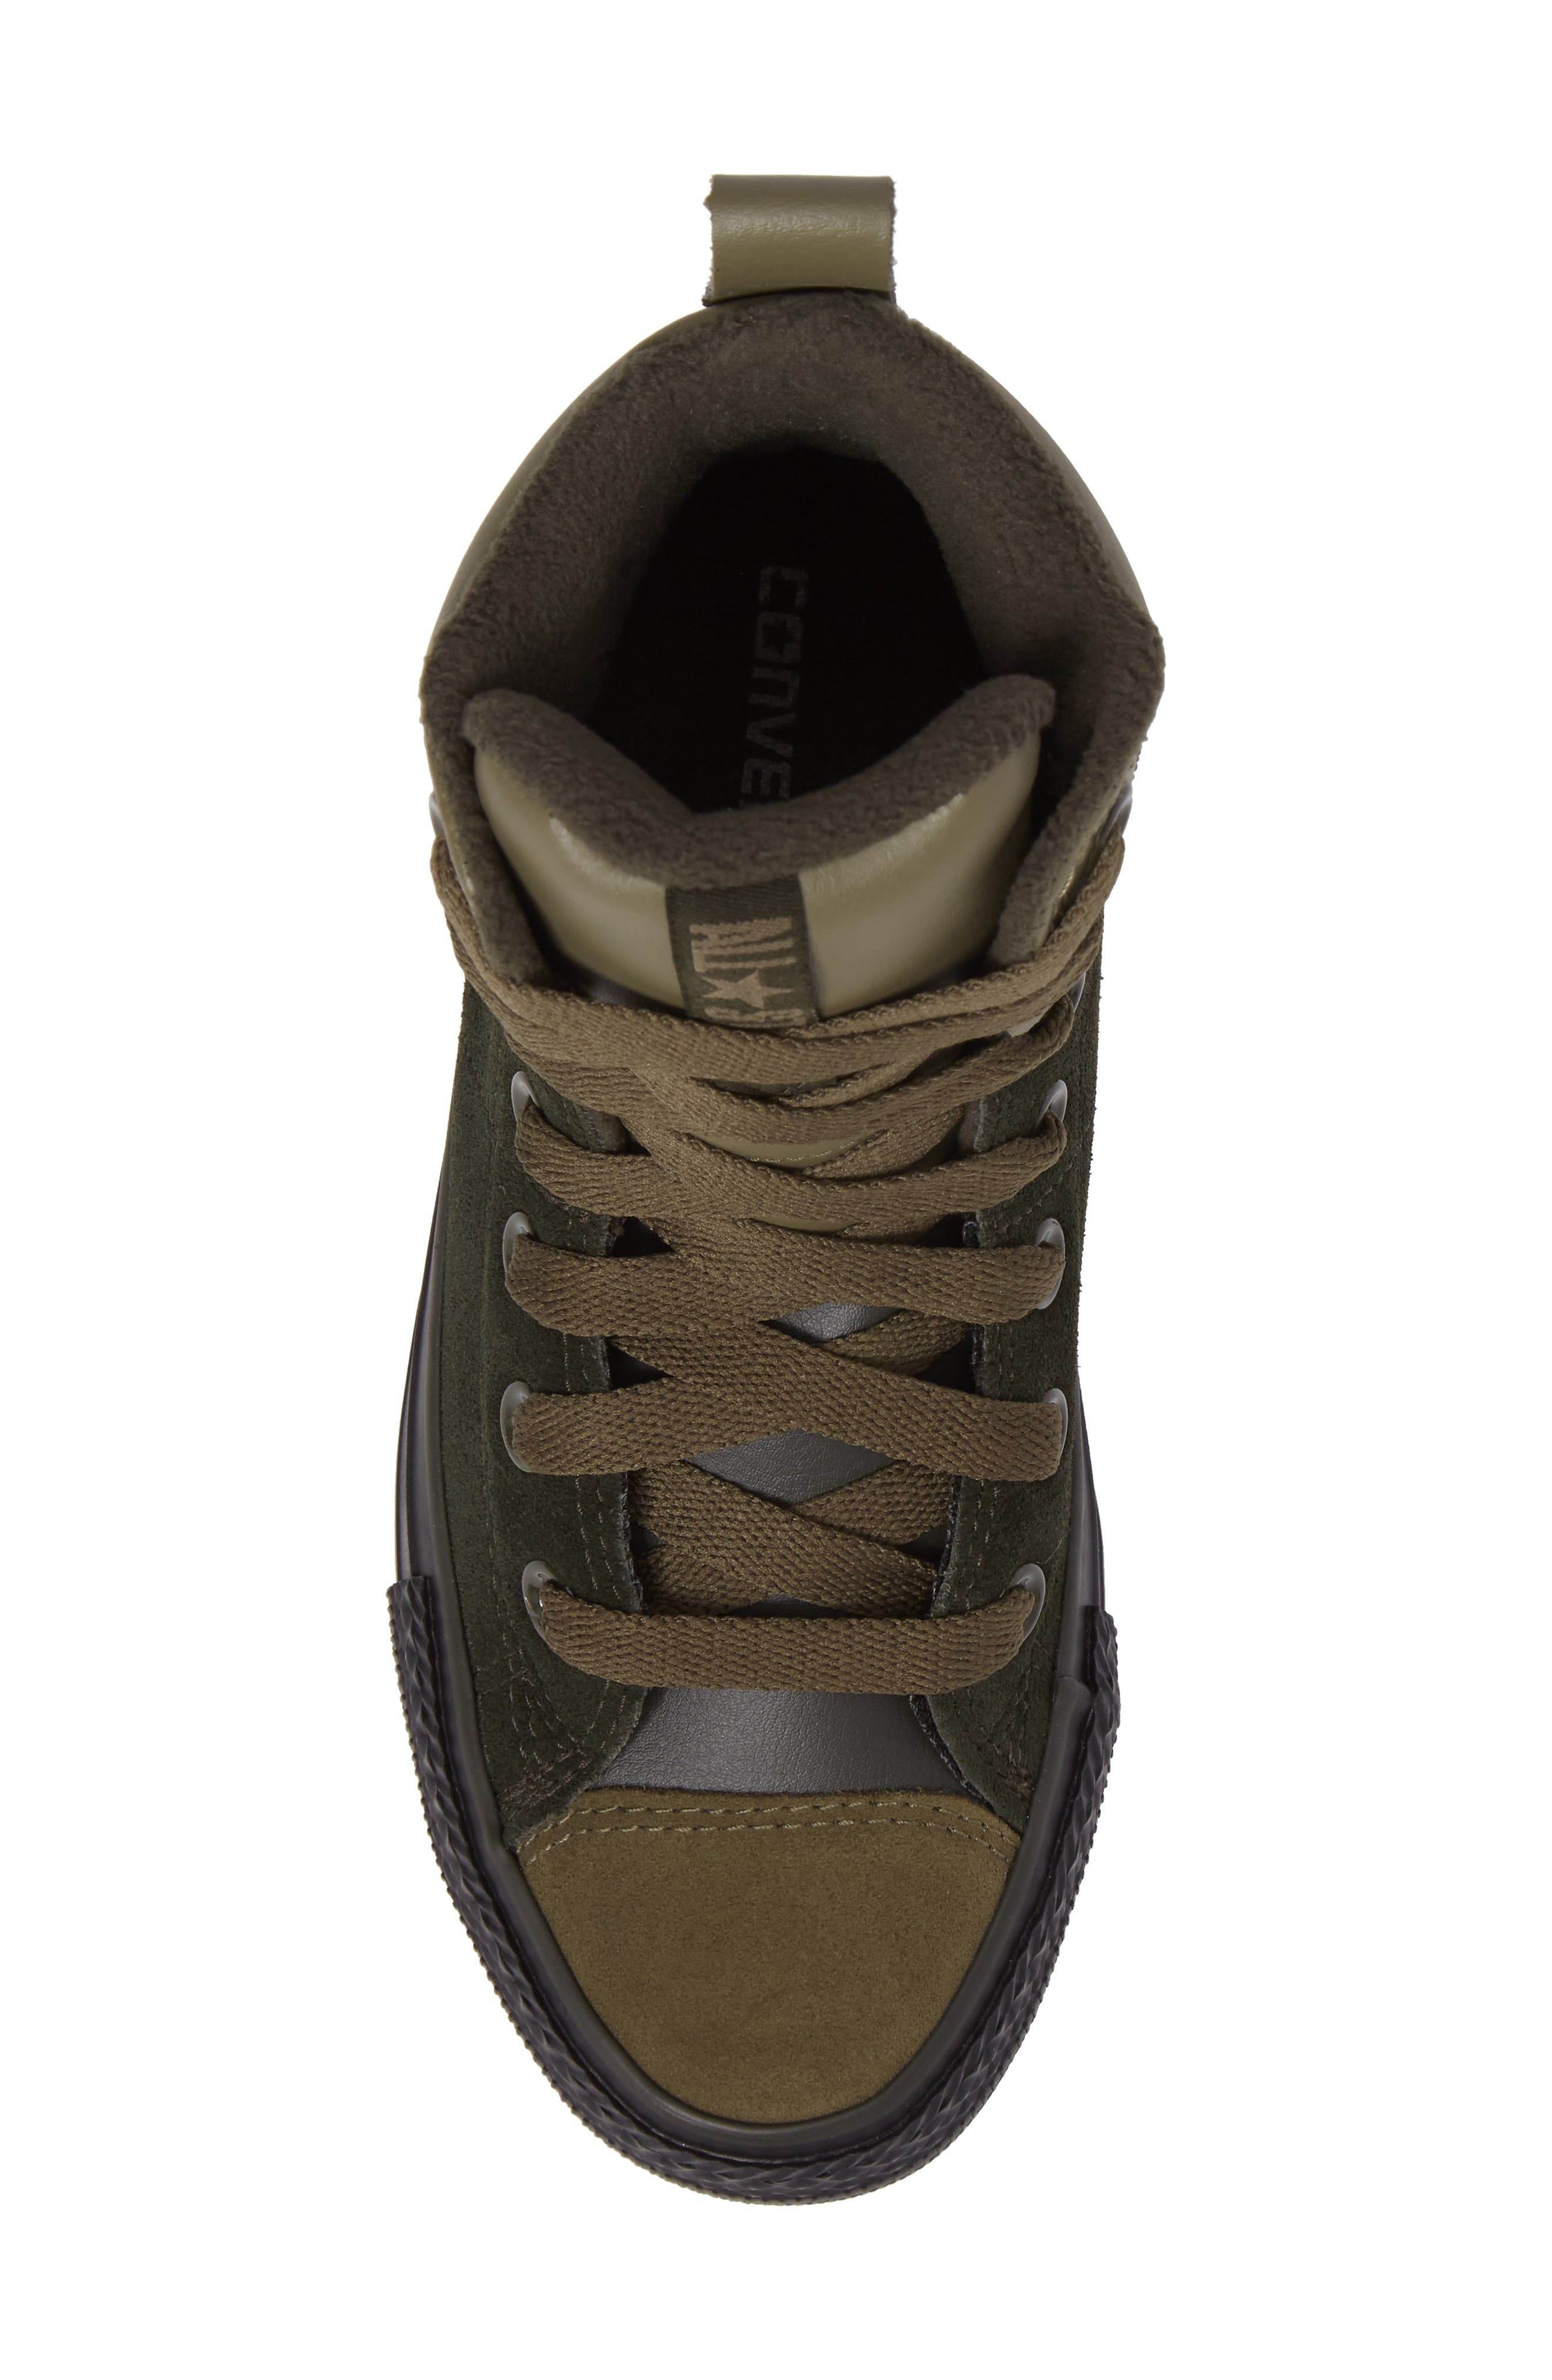 Chuck Taylor<sup>®</sup> All Star<sup>®</sup> Asphalt Sneaker Boot,                             Alternate thumbnail 5, color,                             Sequoia